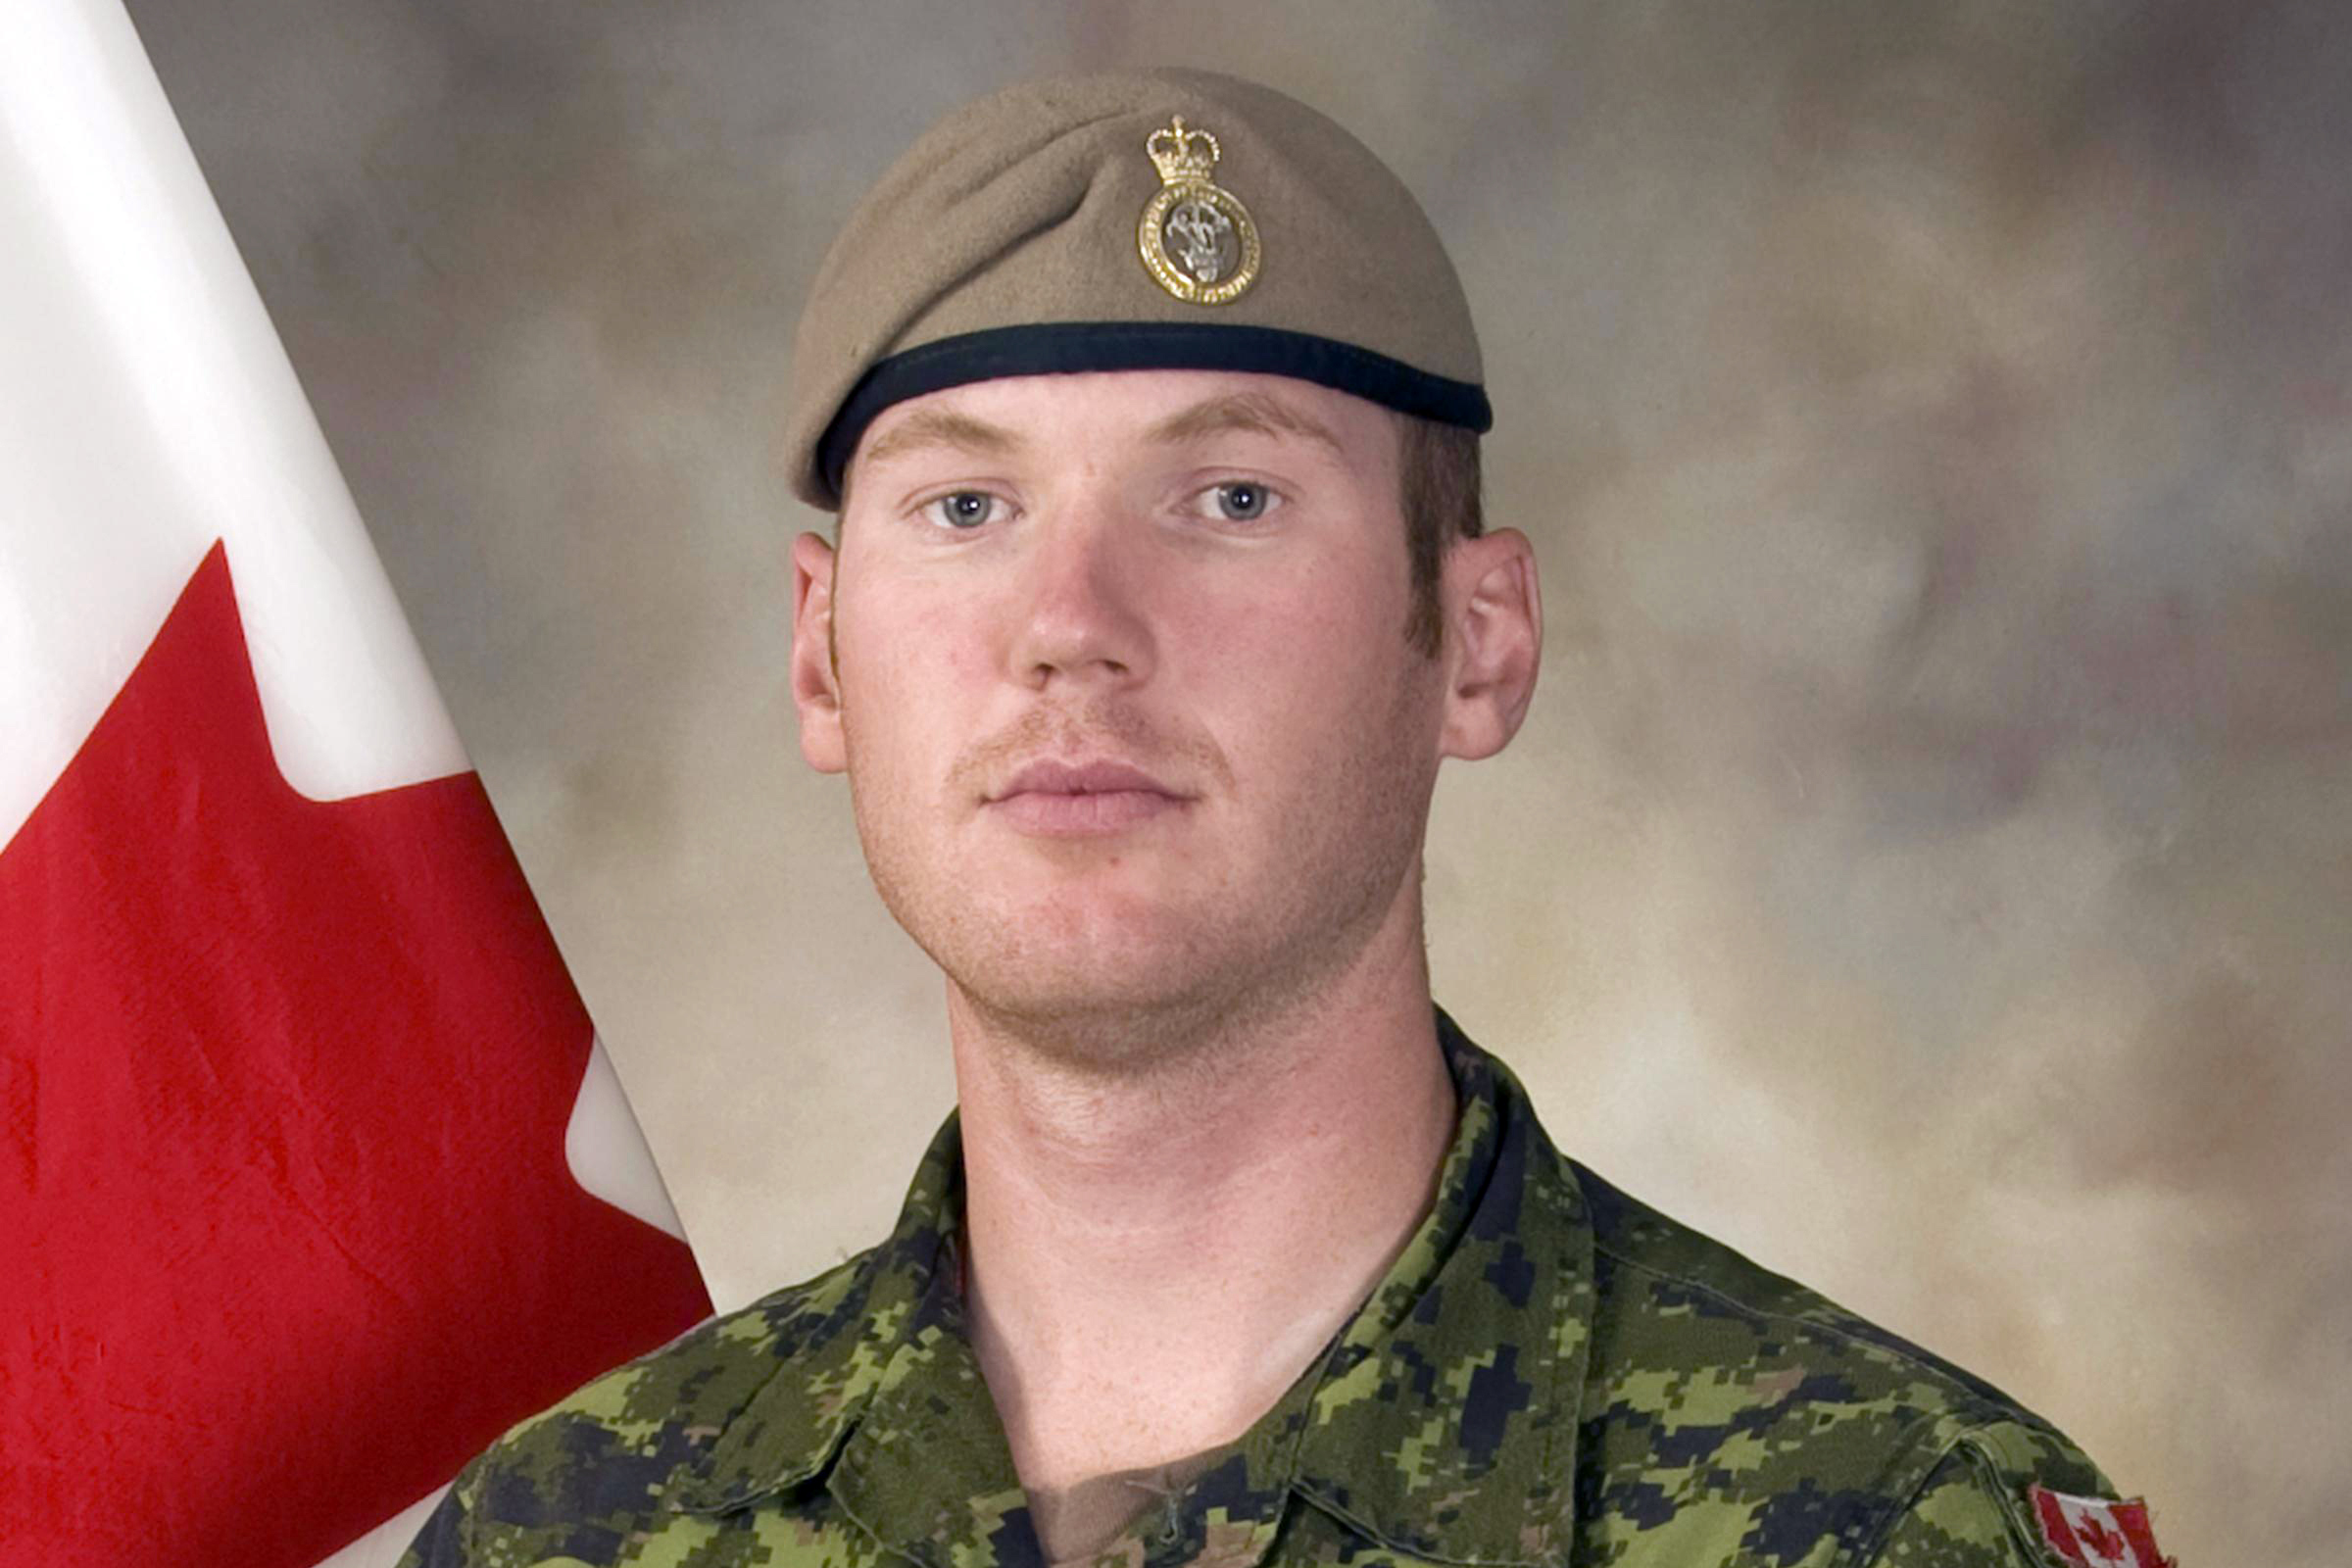 Canadian special forces soldier killed by Kurdish friendly